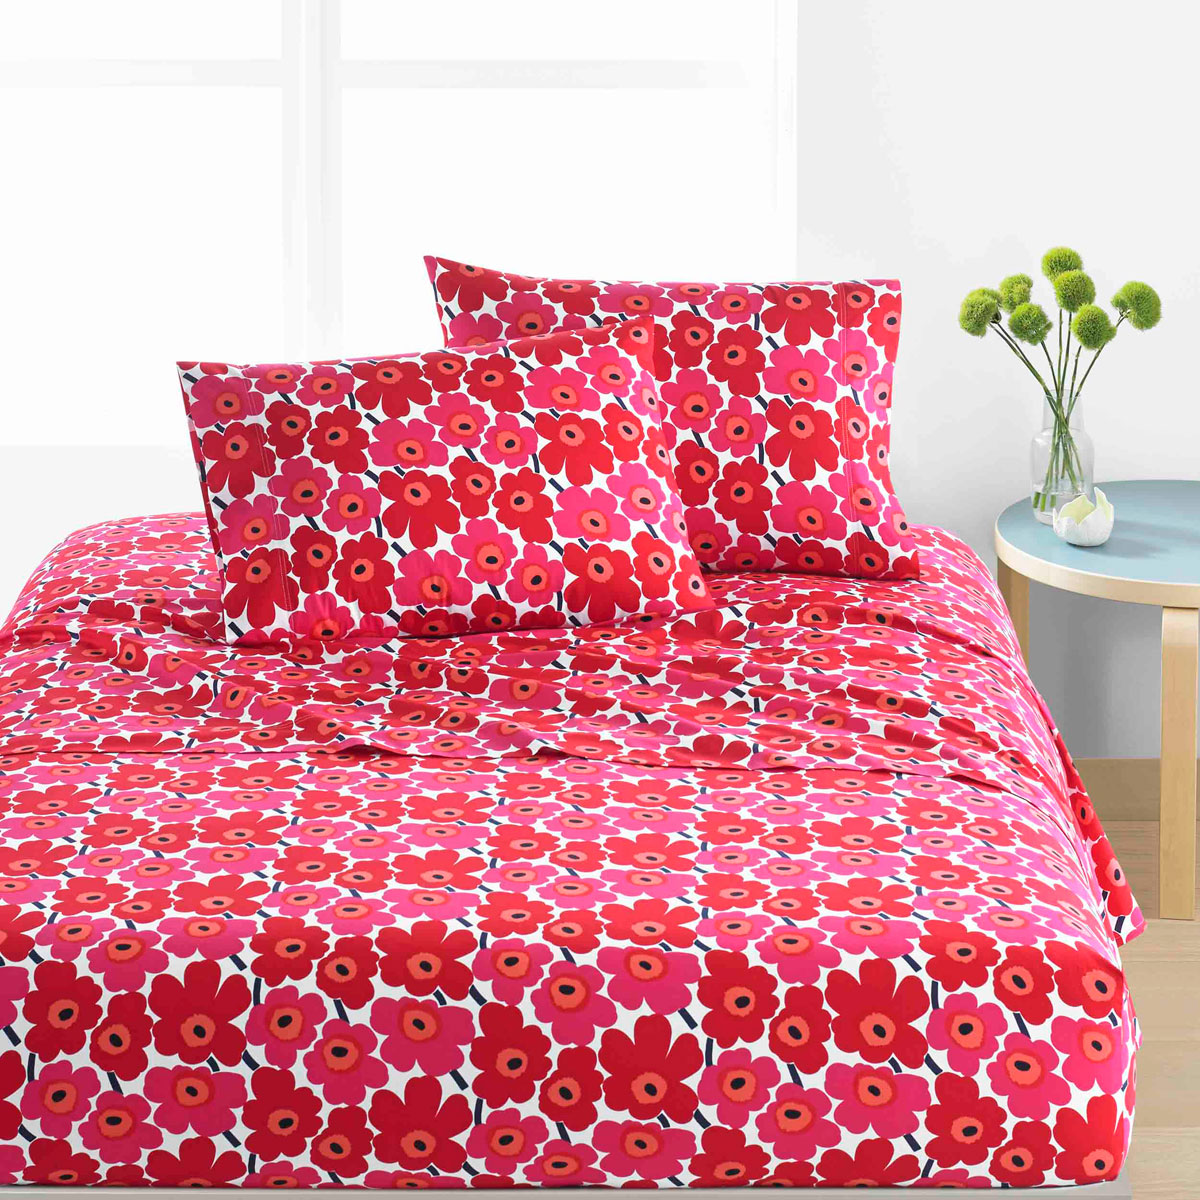 Marimekko Mini Unikko Red King Sheet Set Marimekko Pillowcases Sheet Sets